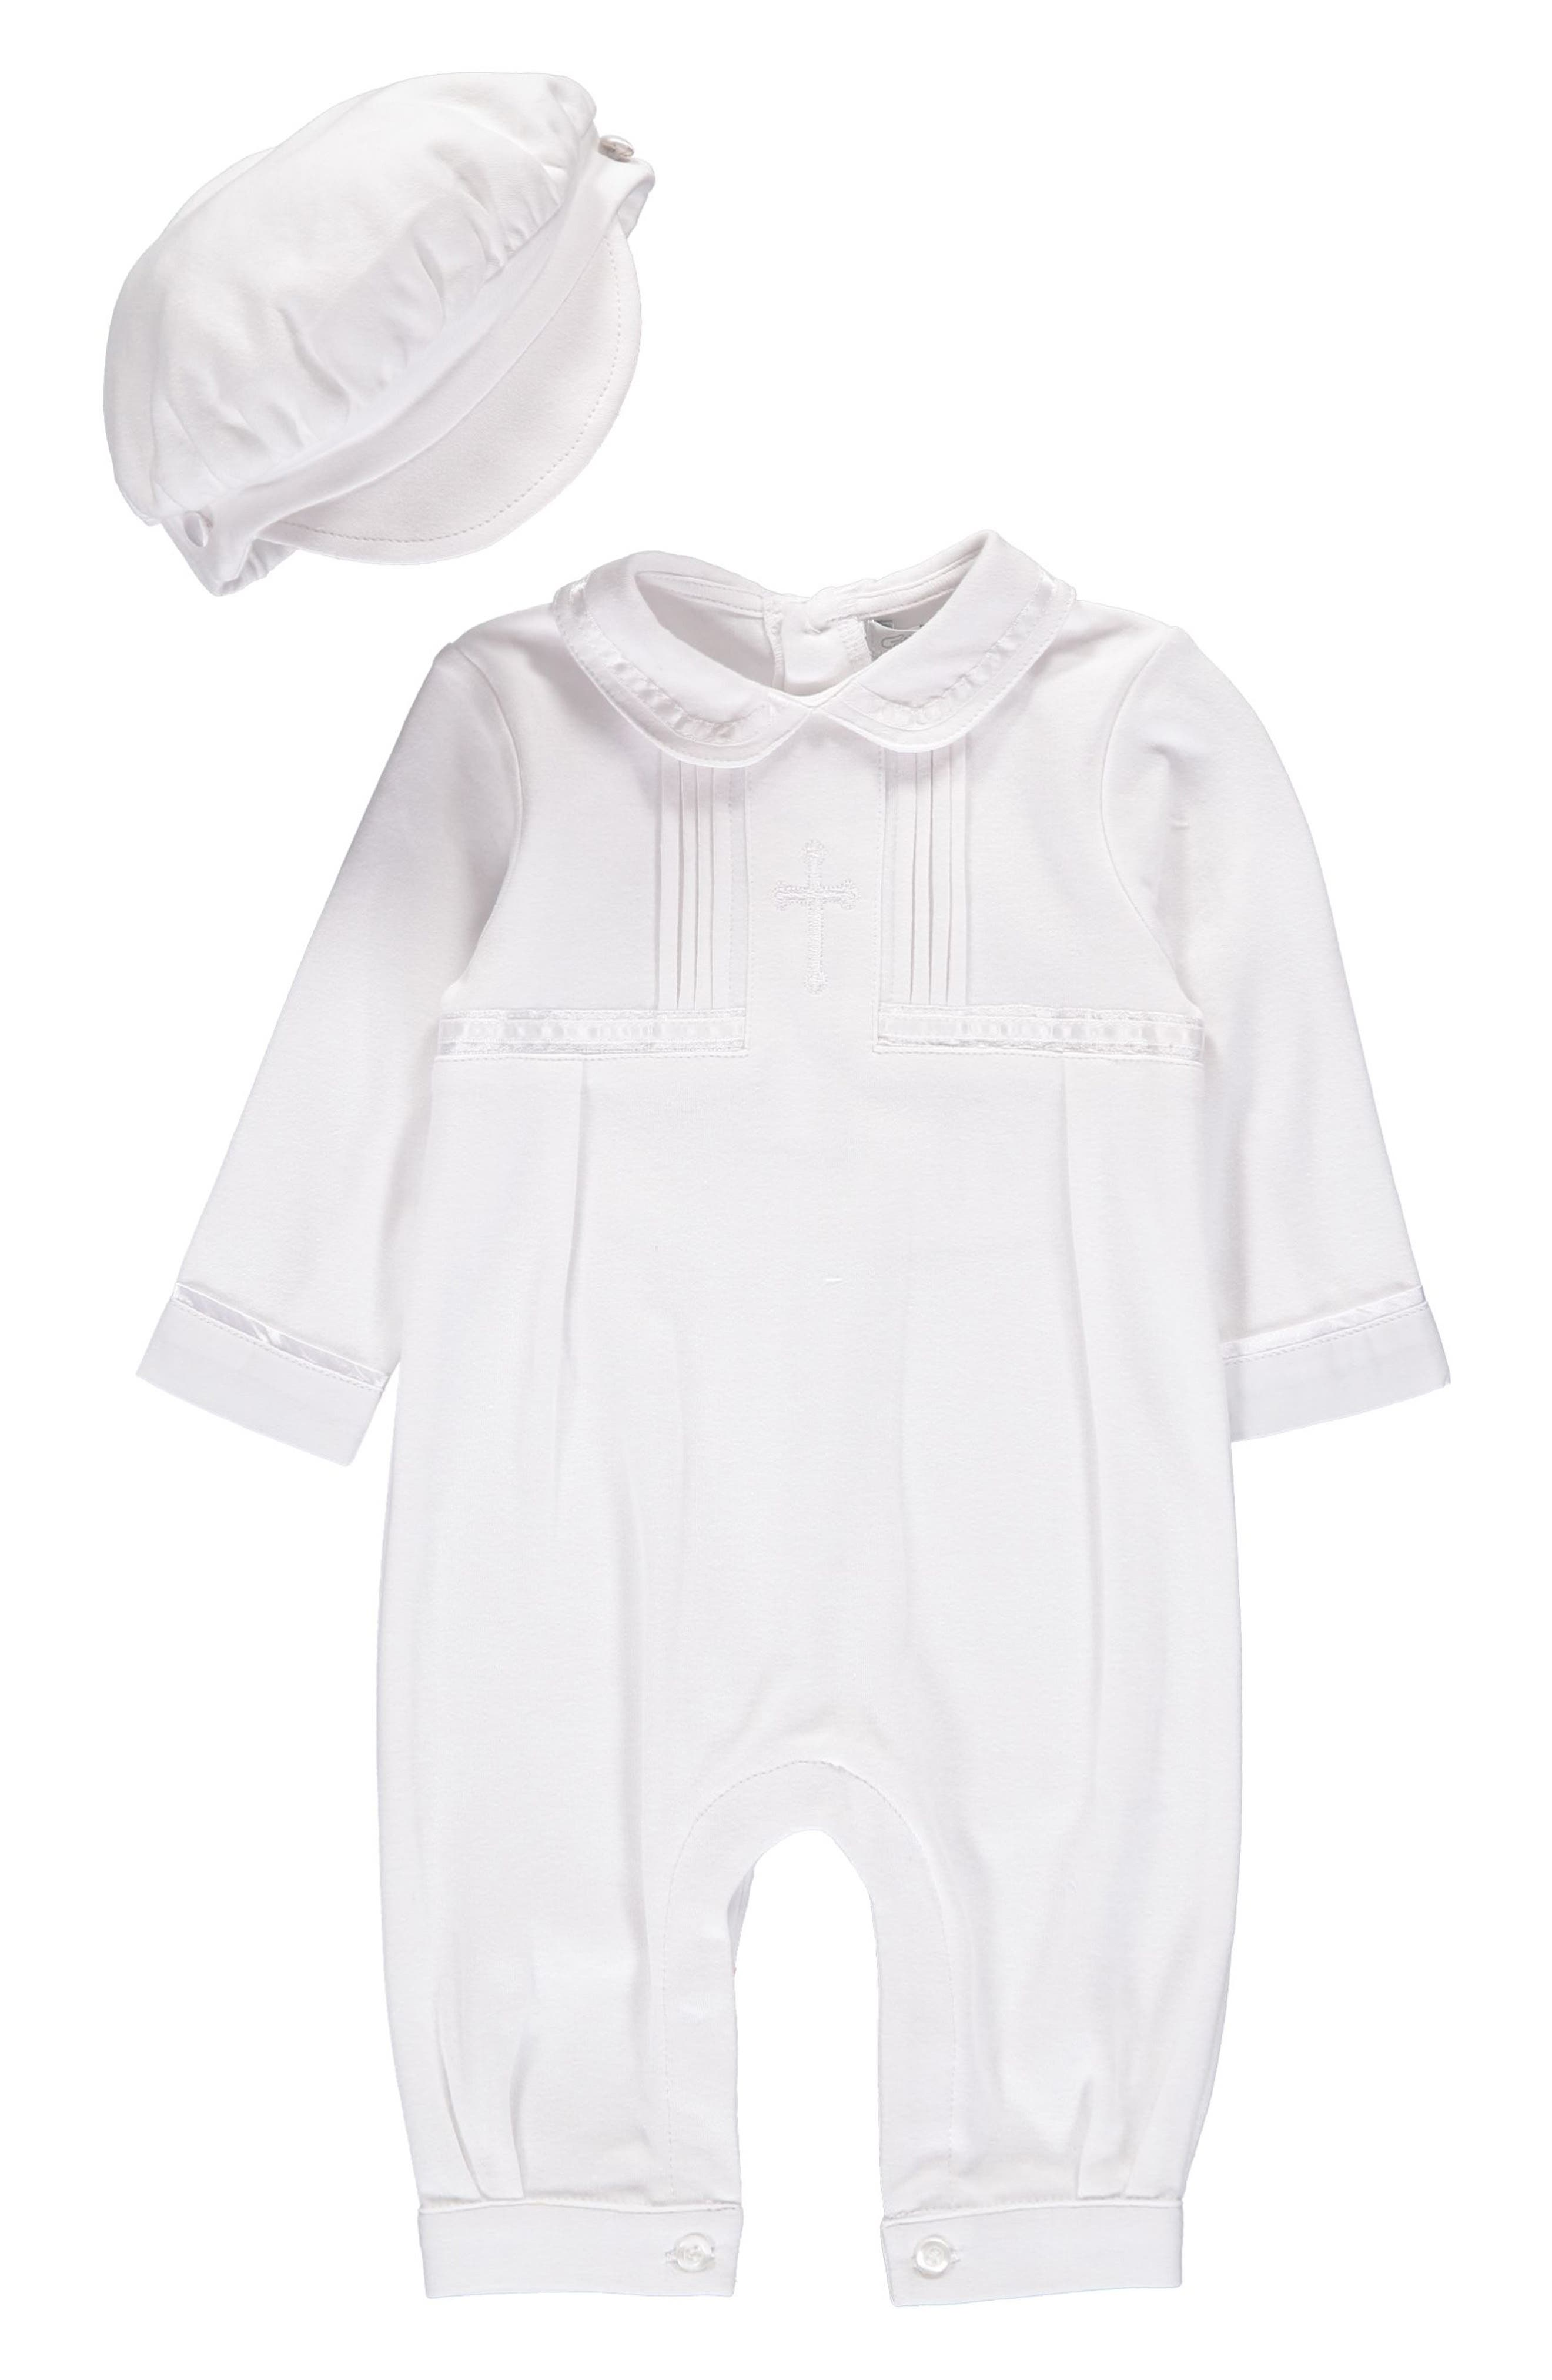 Main Image - Carriage Boutique Christening Romper & Cap Set (Baby Boys)